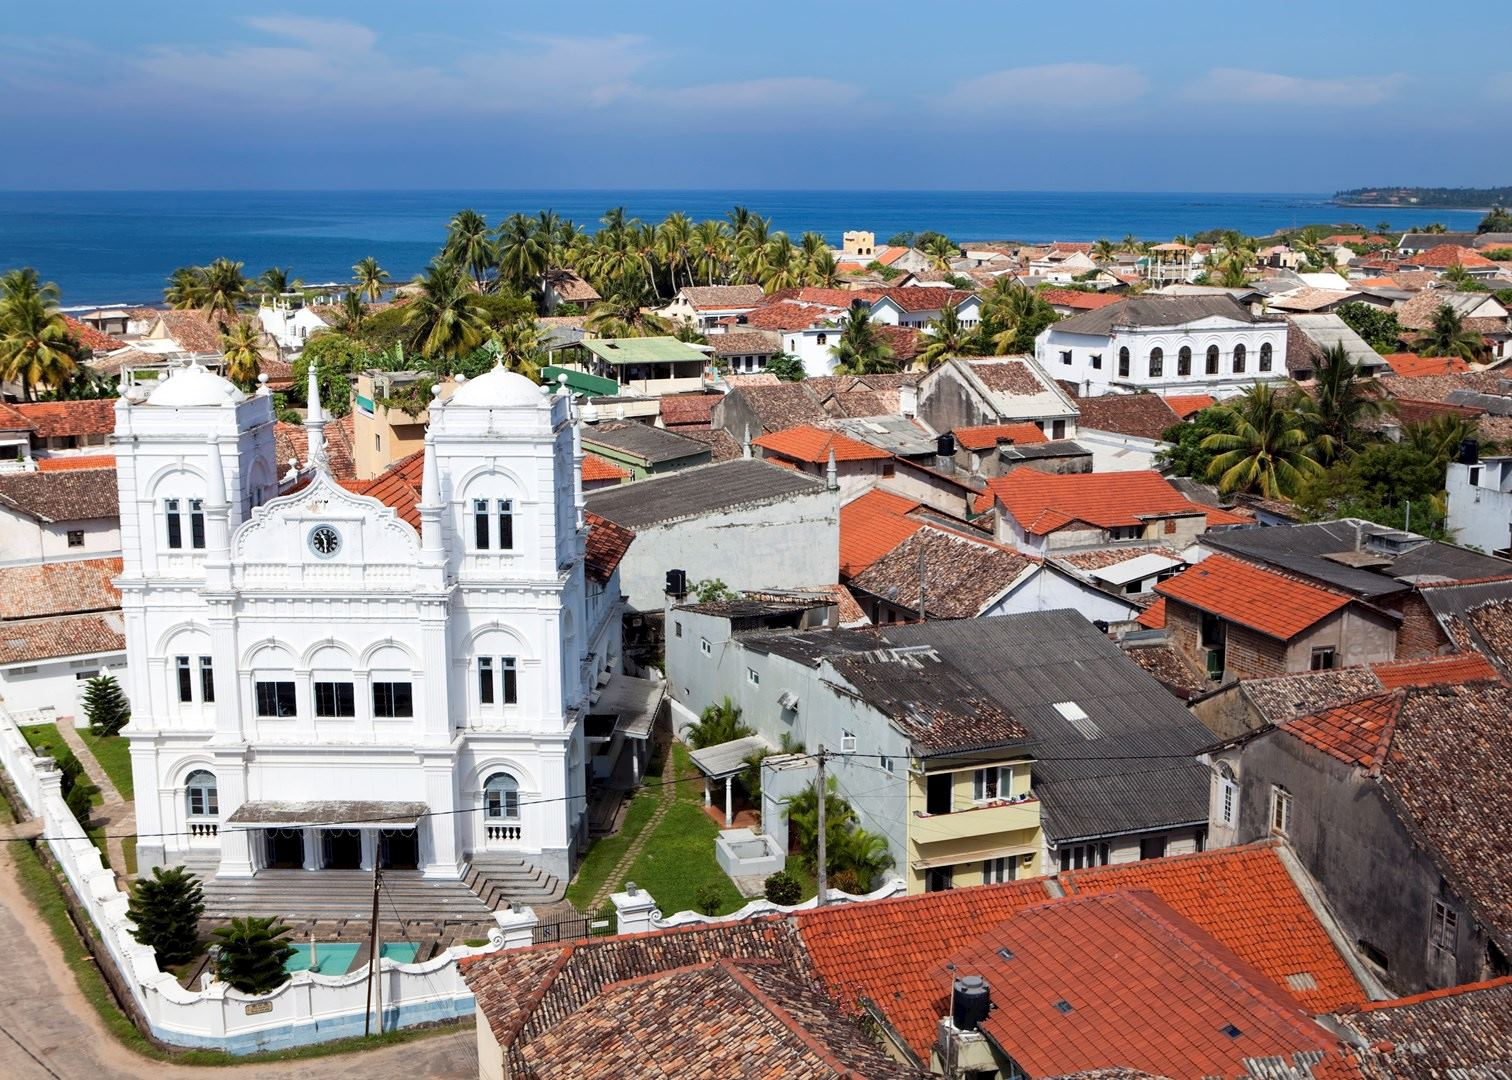 Visit Galle on a trip to Sri Lanka | Audley Travel